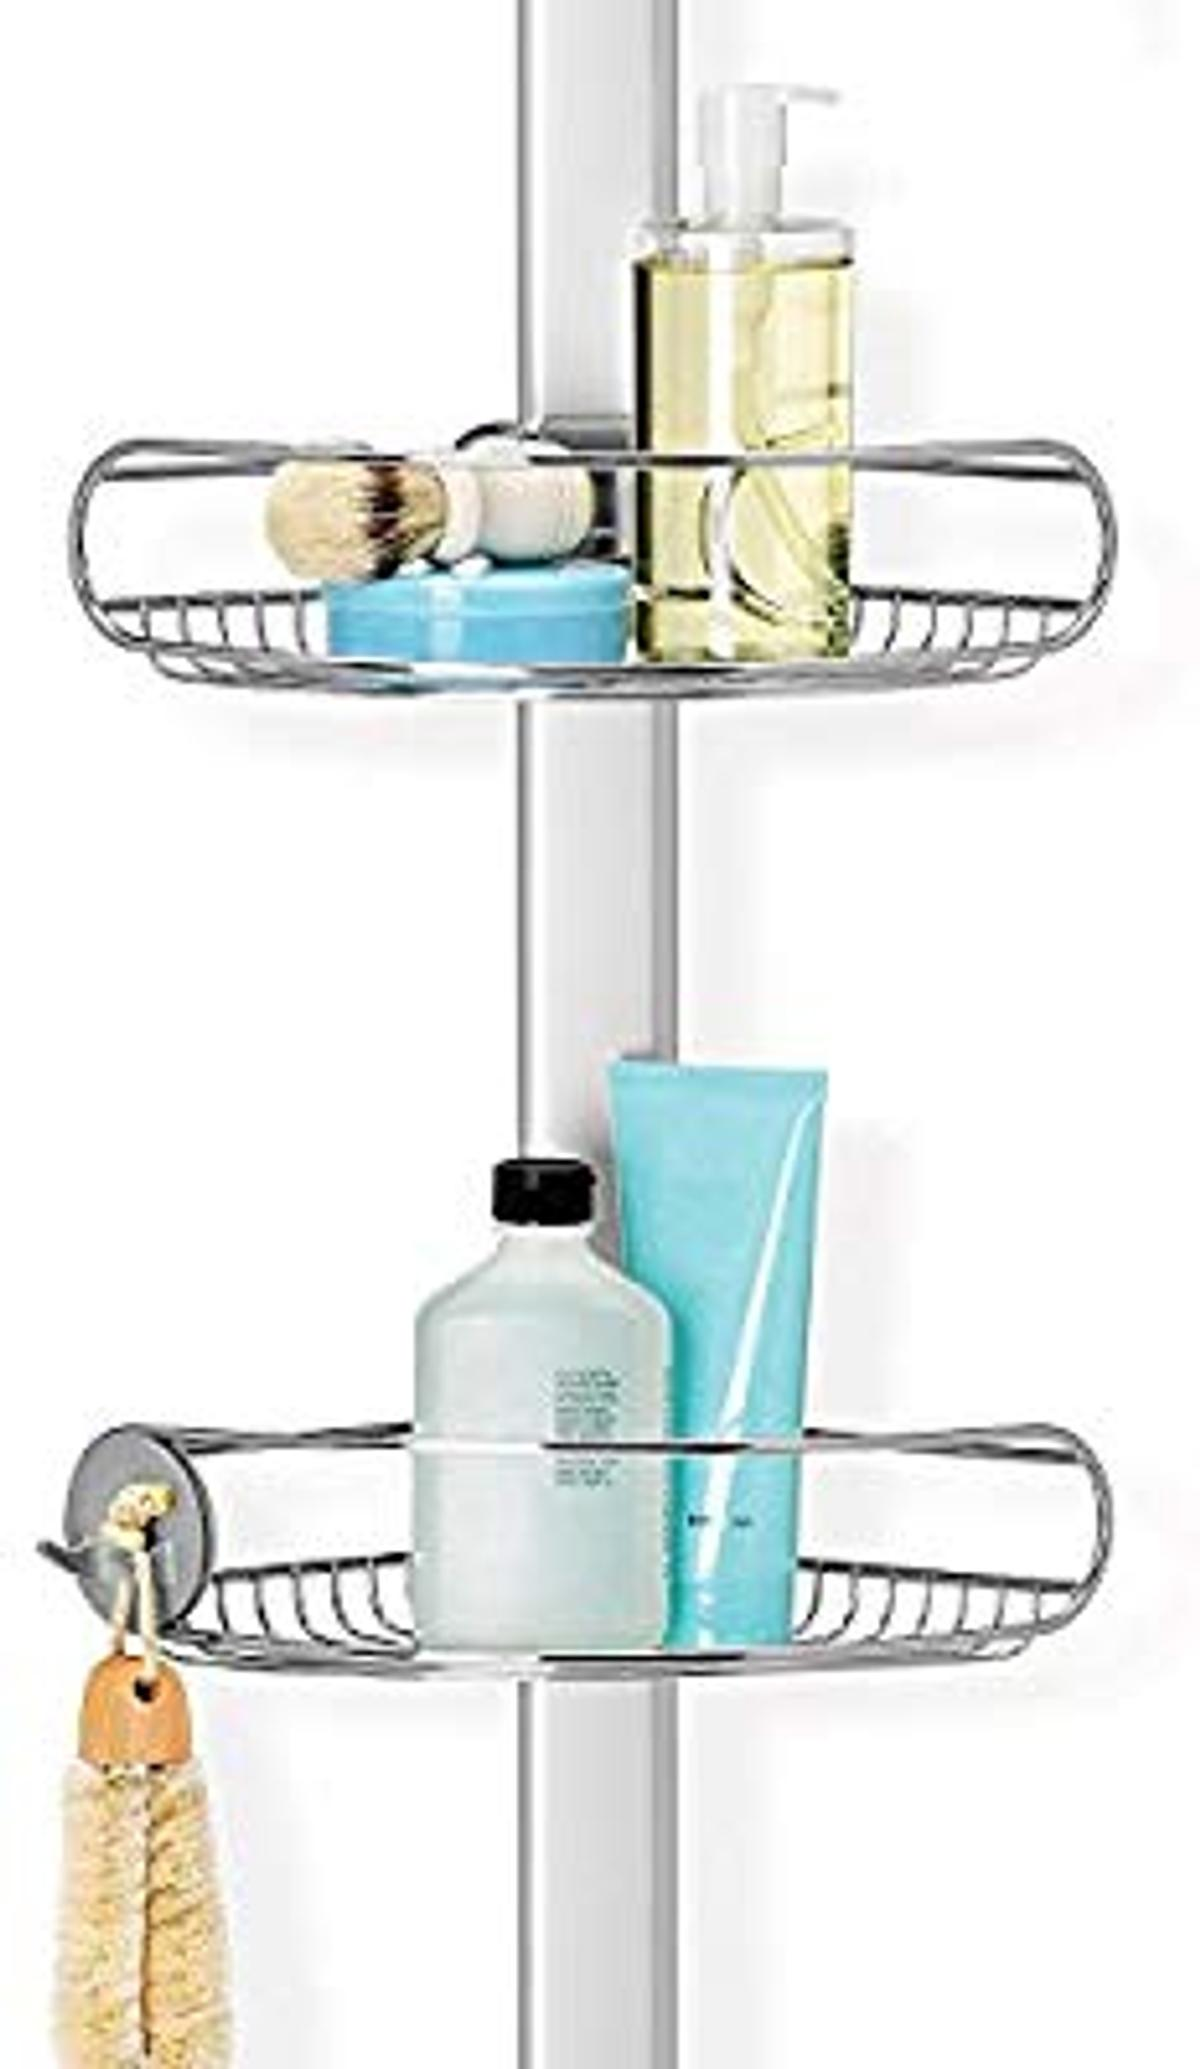 Simple Human Shower Caddy In S65 Rotherham For 60 00 For